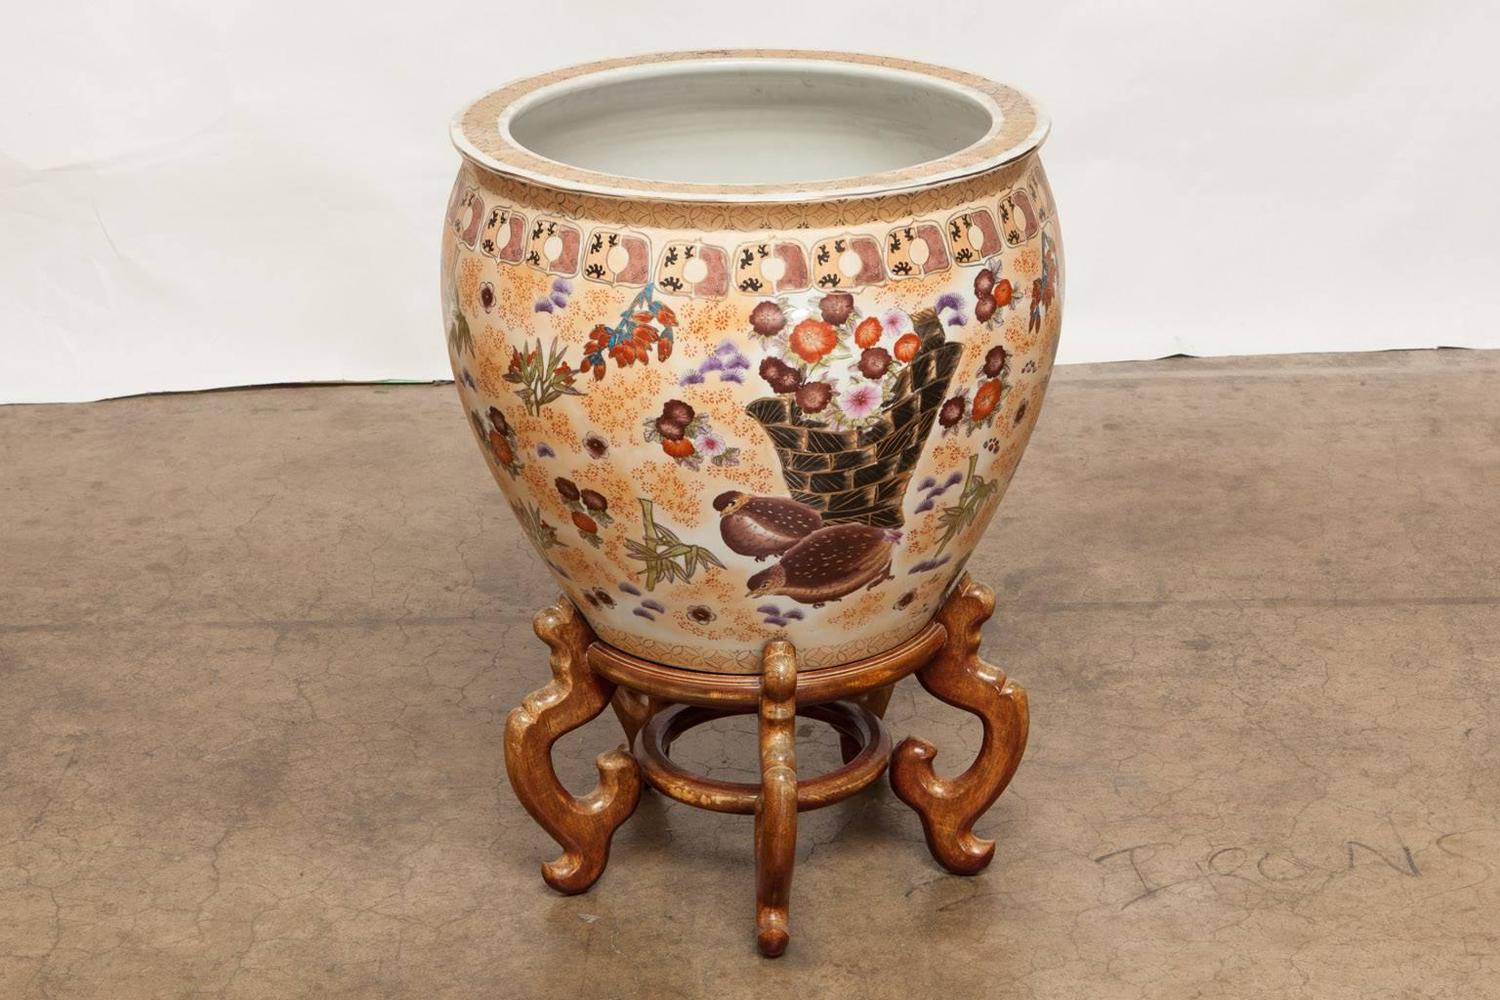 Chinese Porcelain Fish Bowl Jardiniere On Stand For Sale